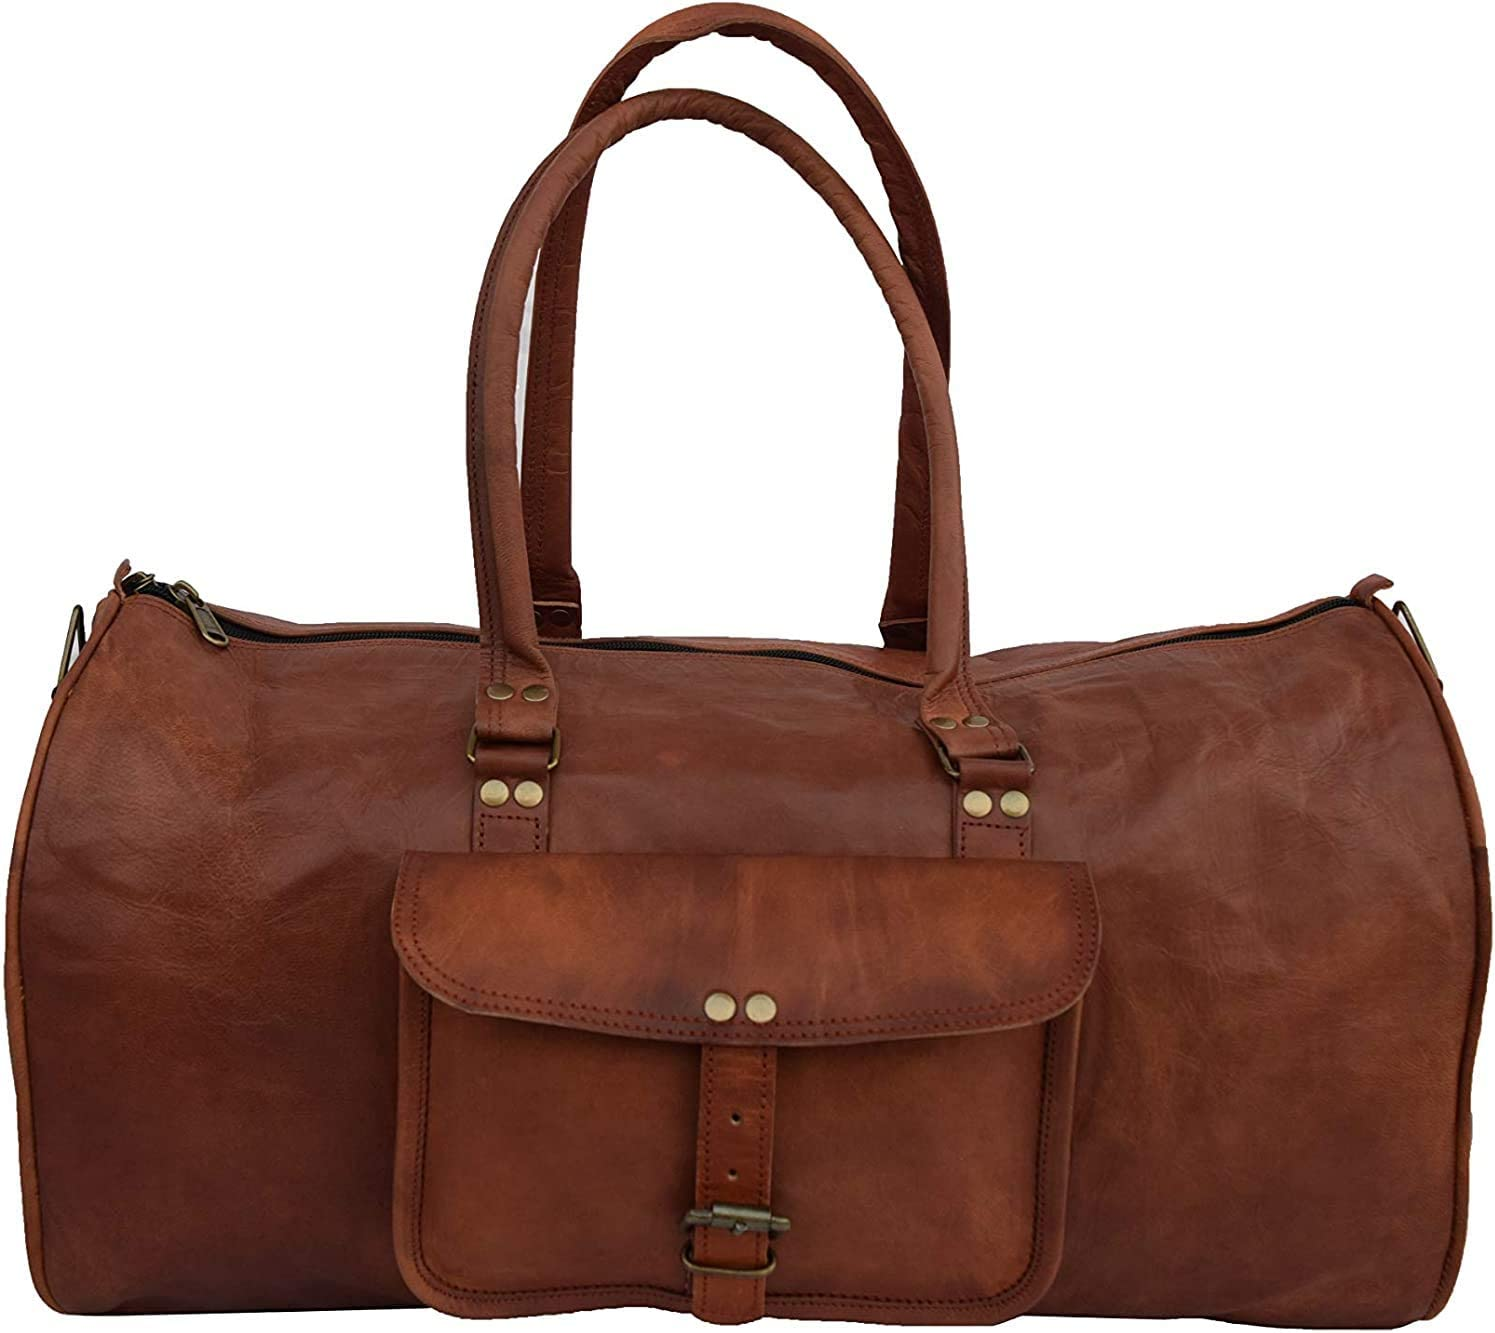 Carry Max 63% OFF On Garment Bag Ranking TOP15 Water Men's for resistant Trav